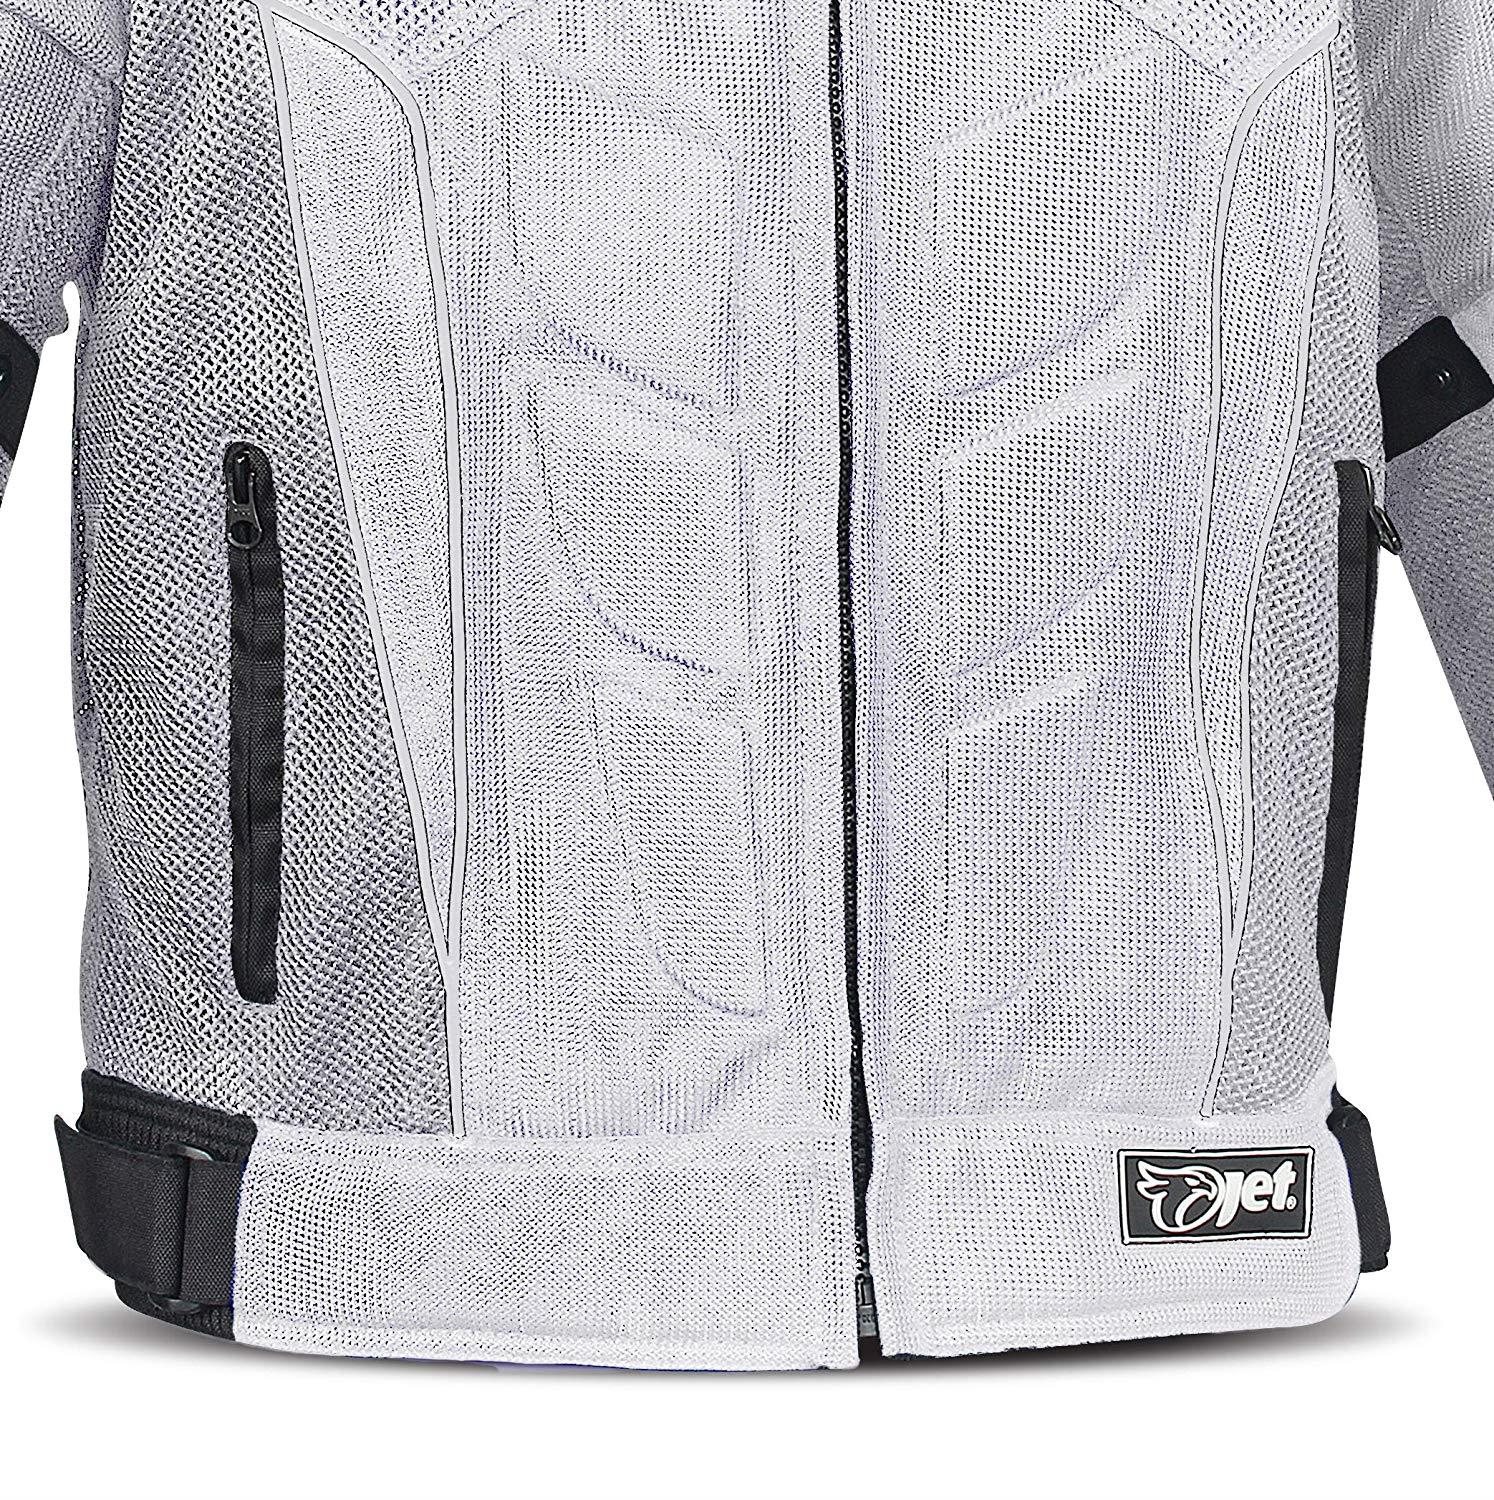 48-50 4XL JET Textile Air Mesh Motorcycle Motorbike Summer Jacket CE Armoured , Silver